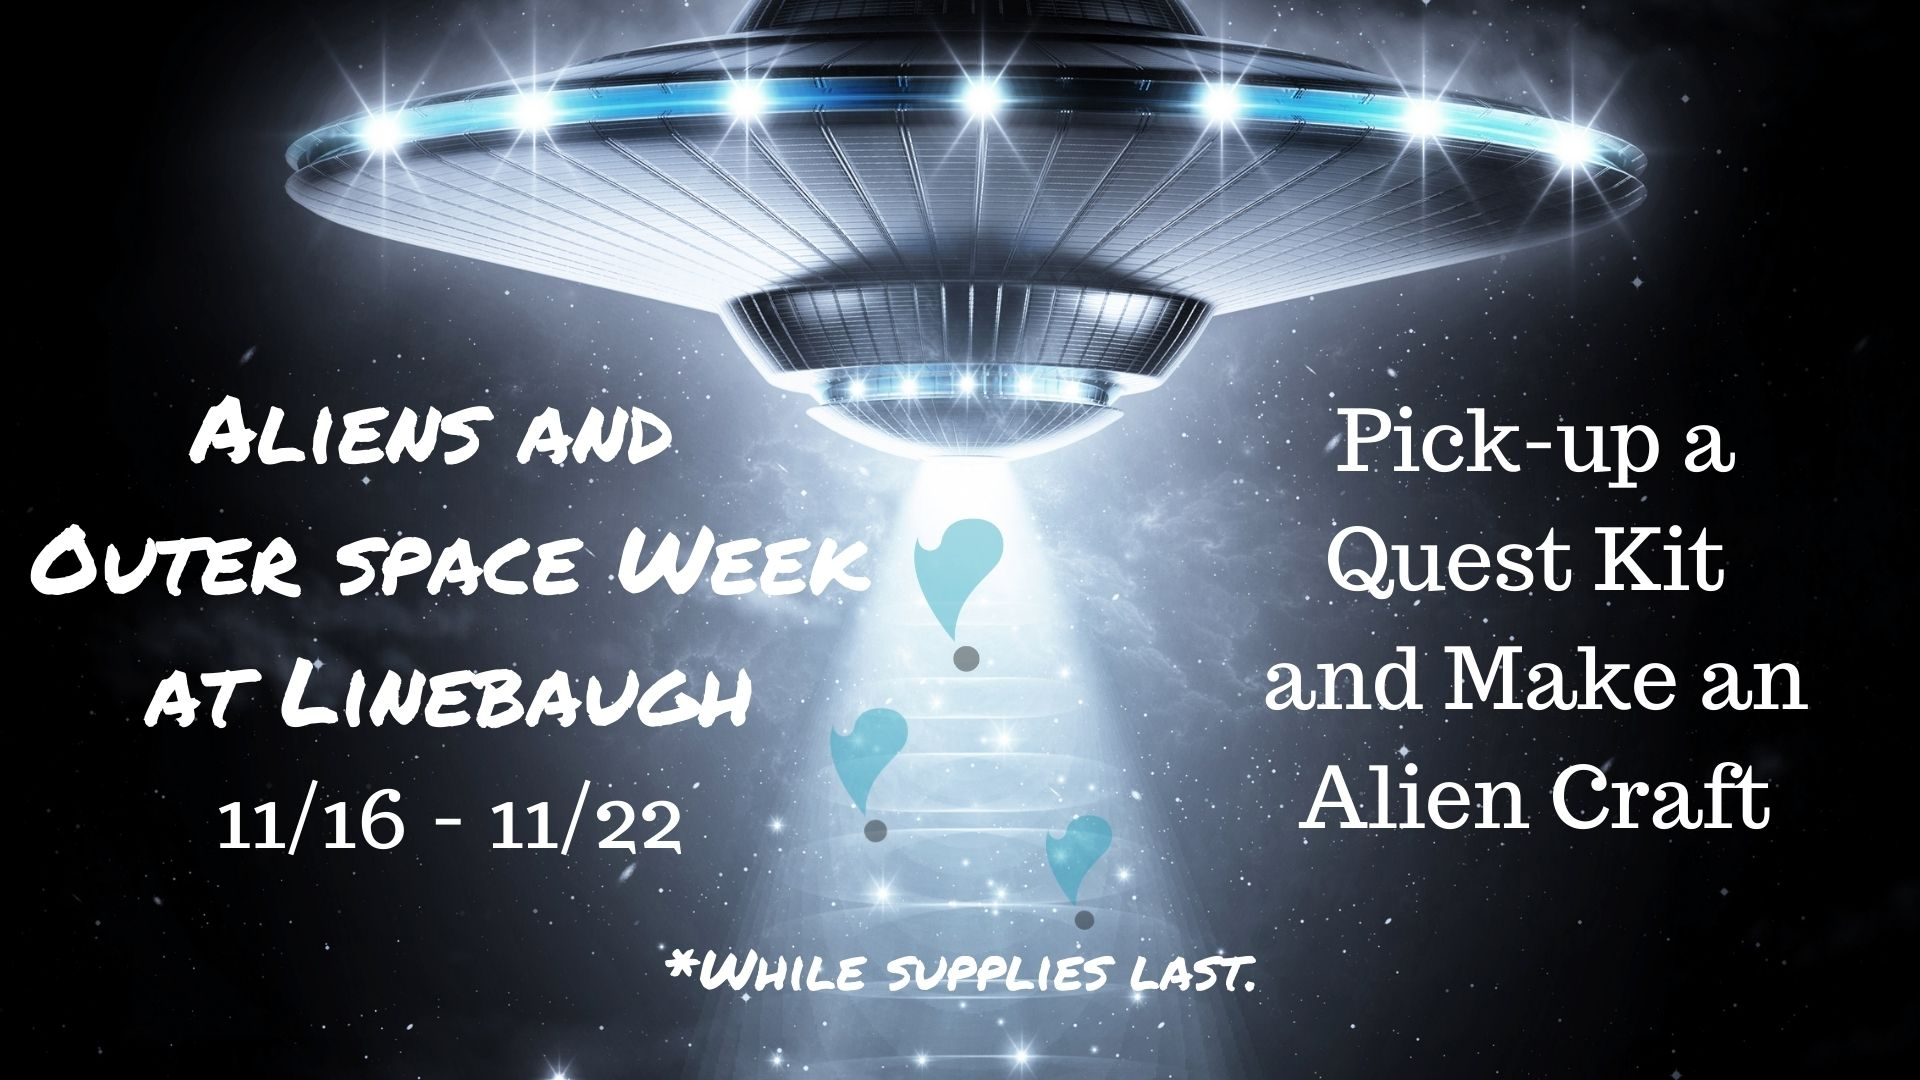 Aliens and Outer Space Quest Kits at Linebaugh